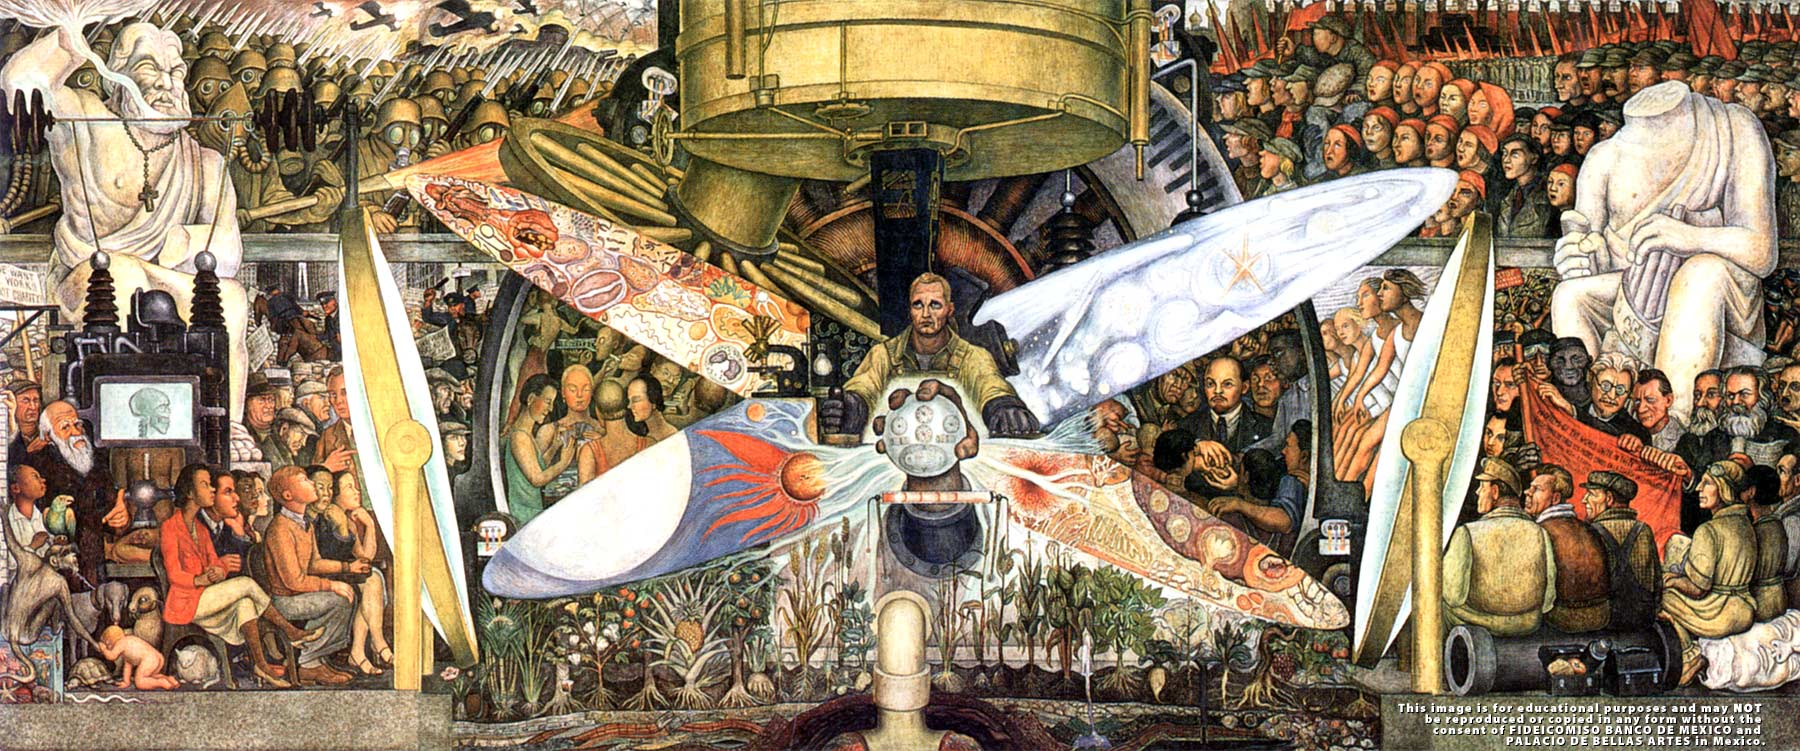 Man at the crossroads, by Diego Rivera